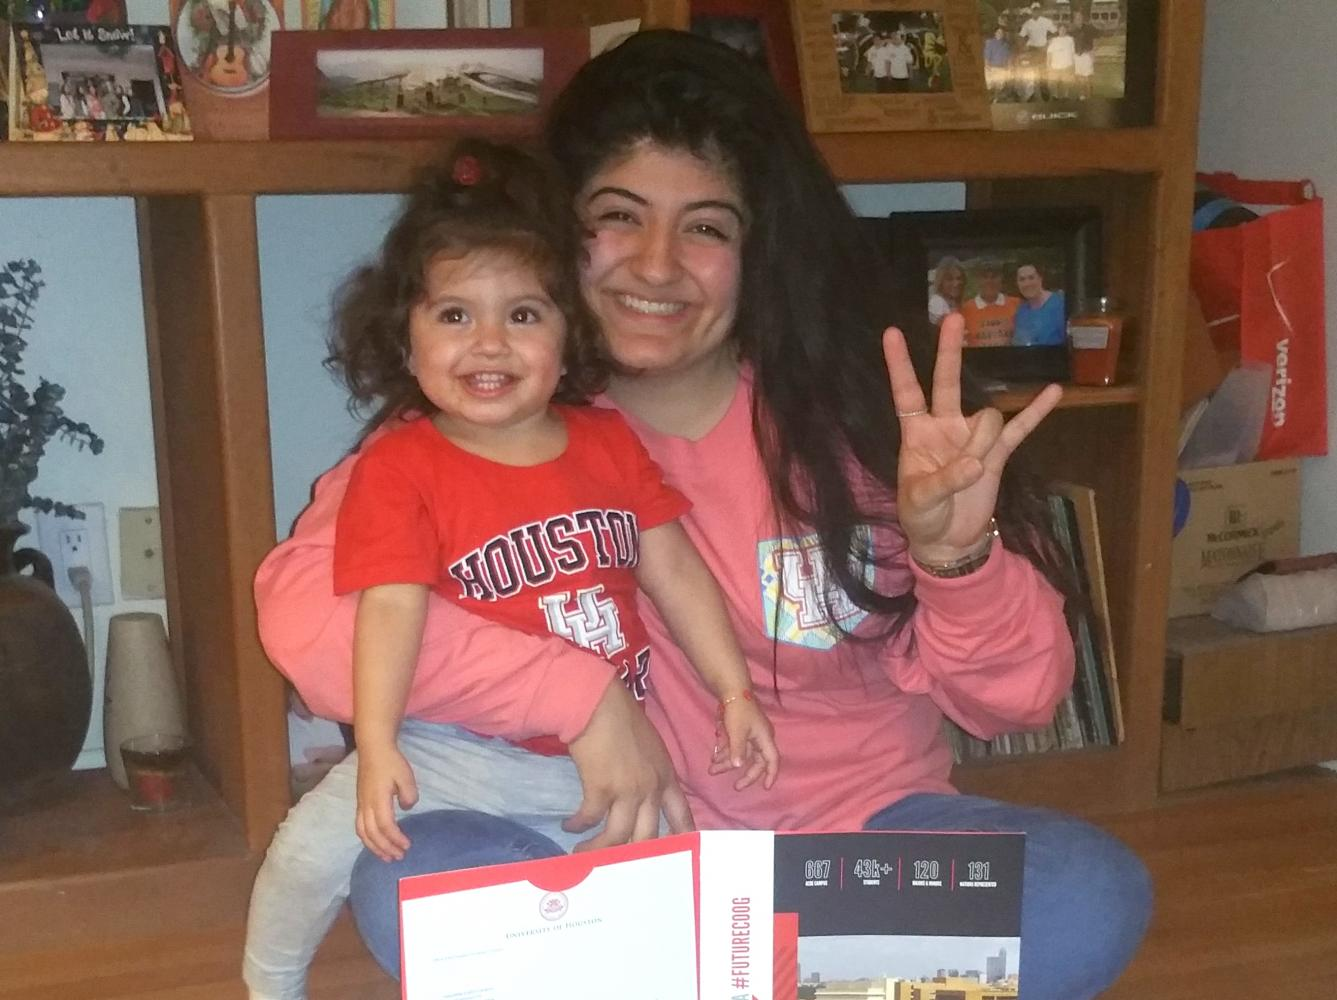 Current Wisdom NHS President Samantha Campos and her daughter Miah